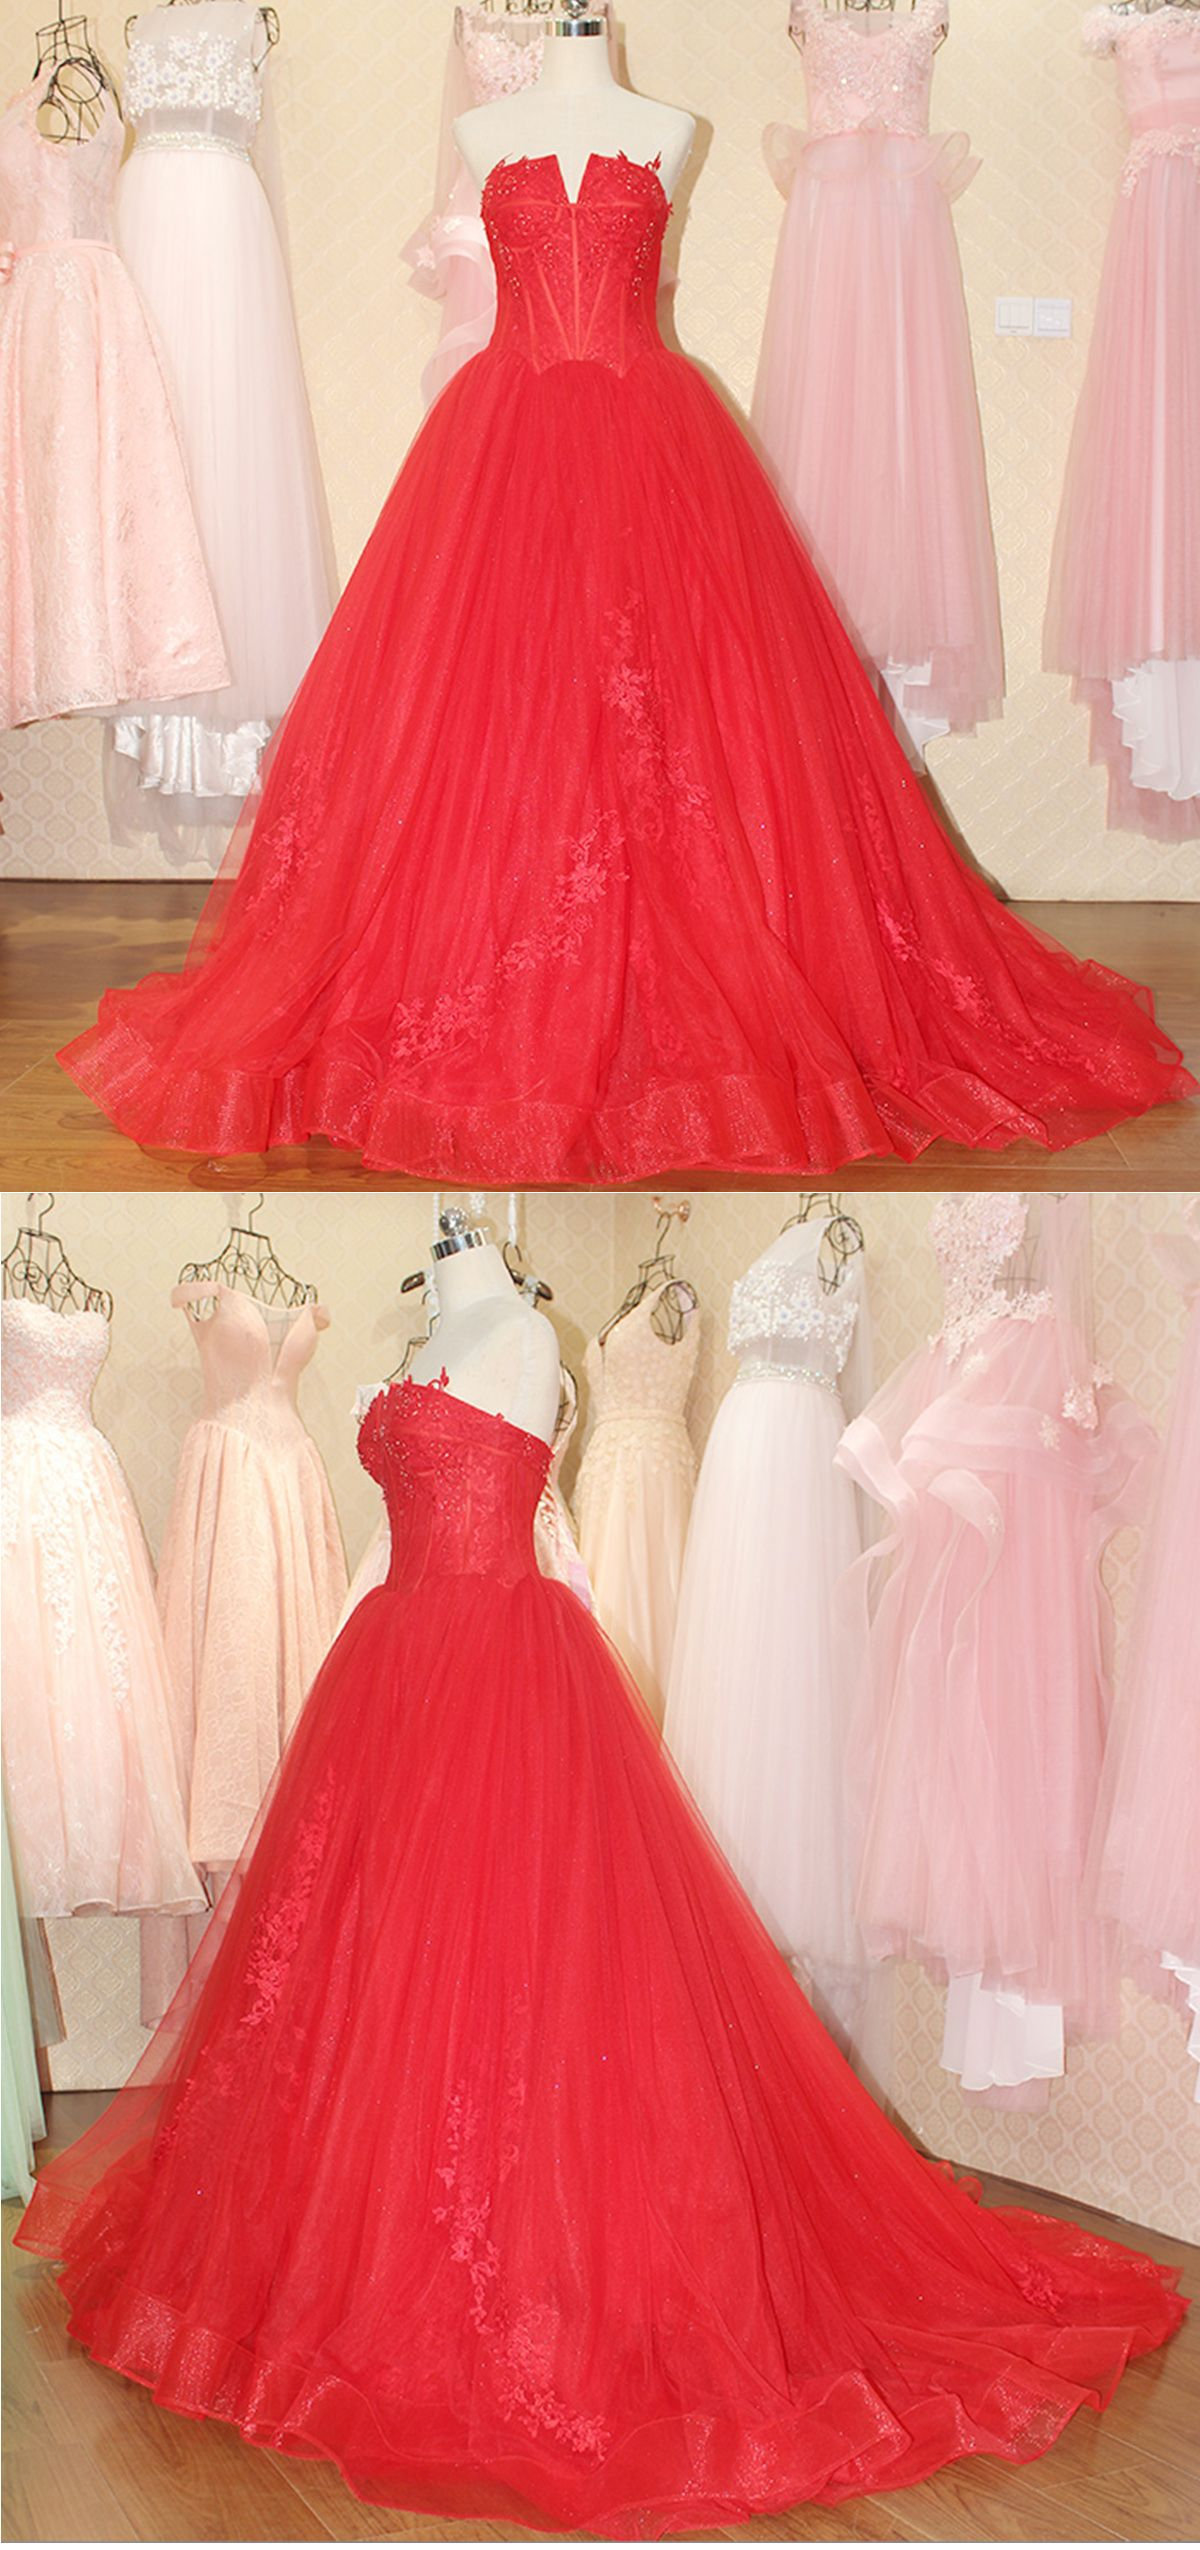 Beautiful red tulle prom dress tull prom dresses pinterest